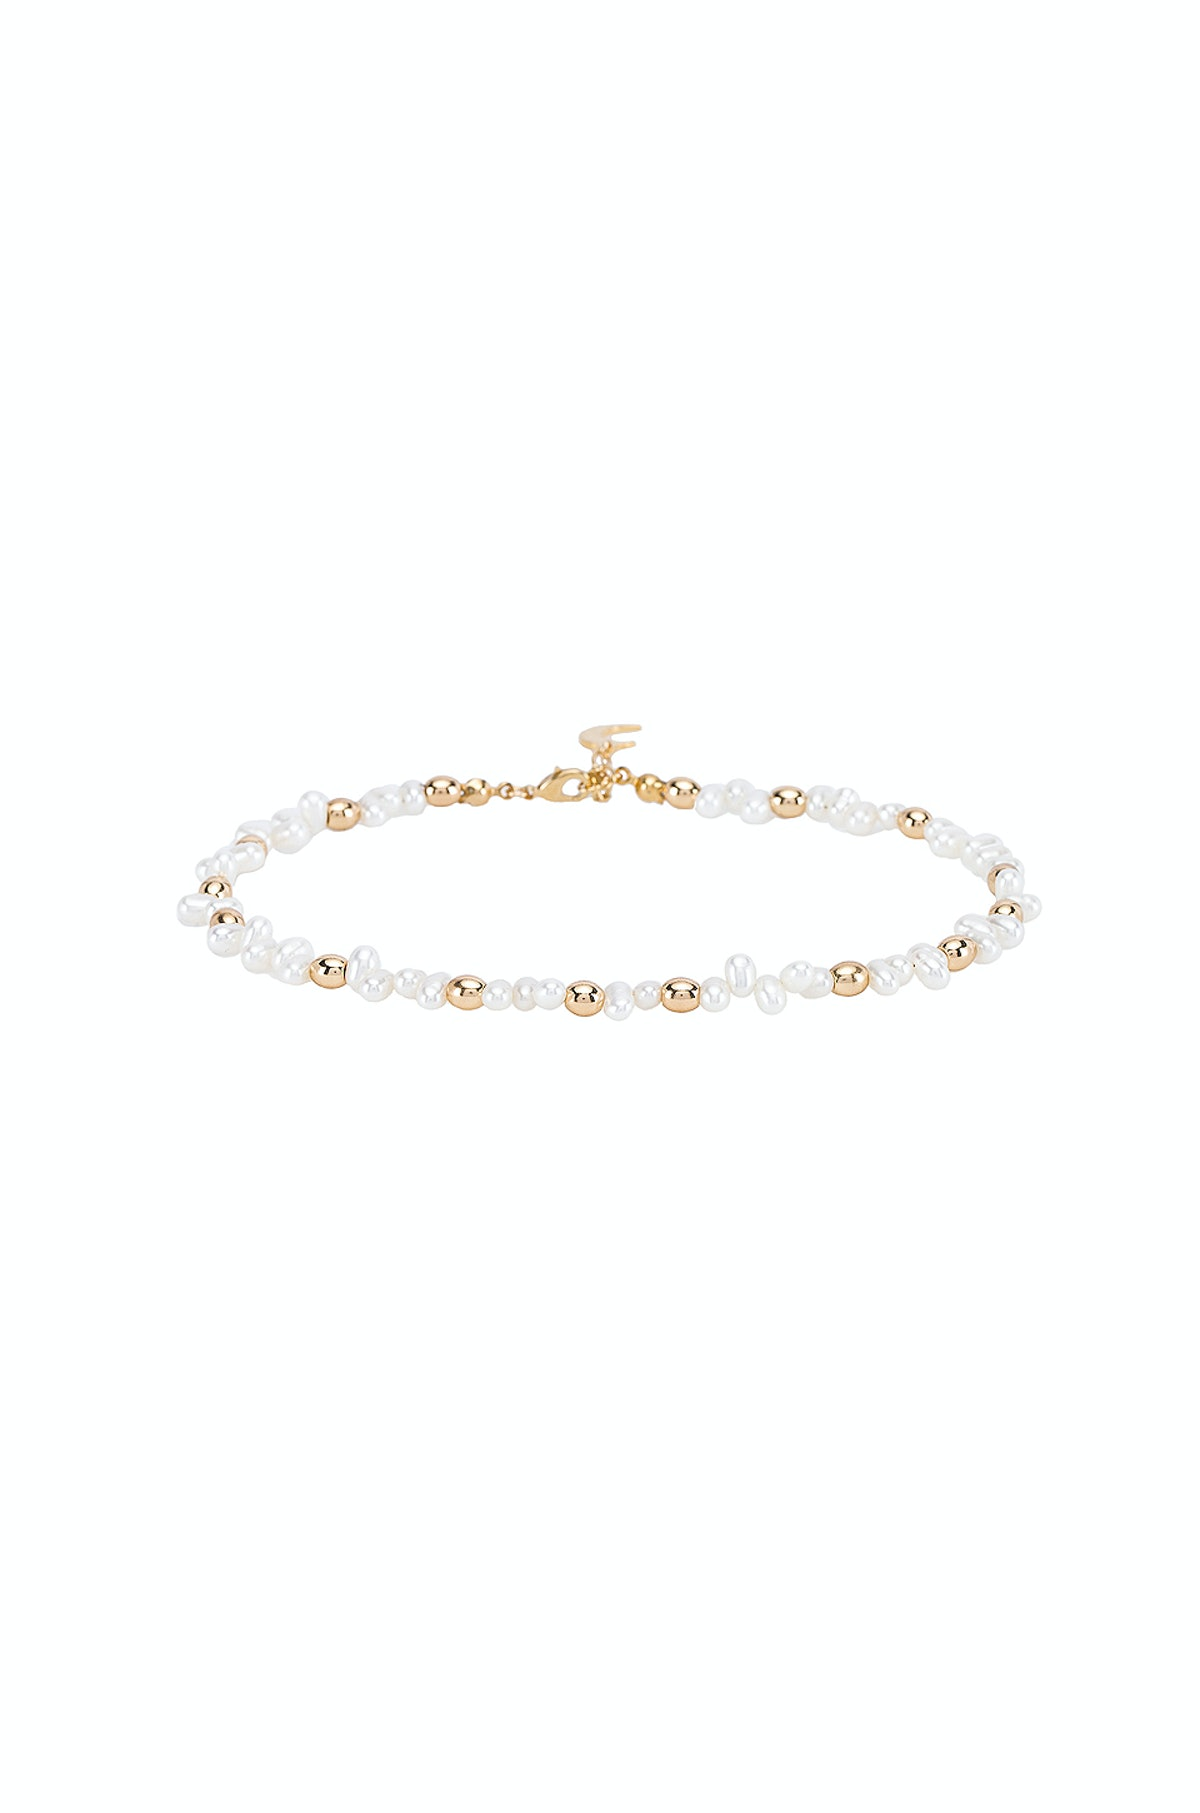 Pearly Chic Anklet  Lili Claspe brand: Lili Claspe